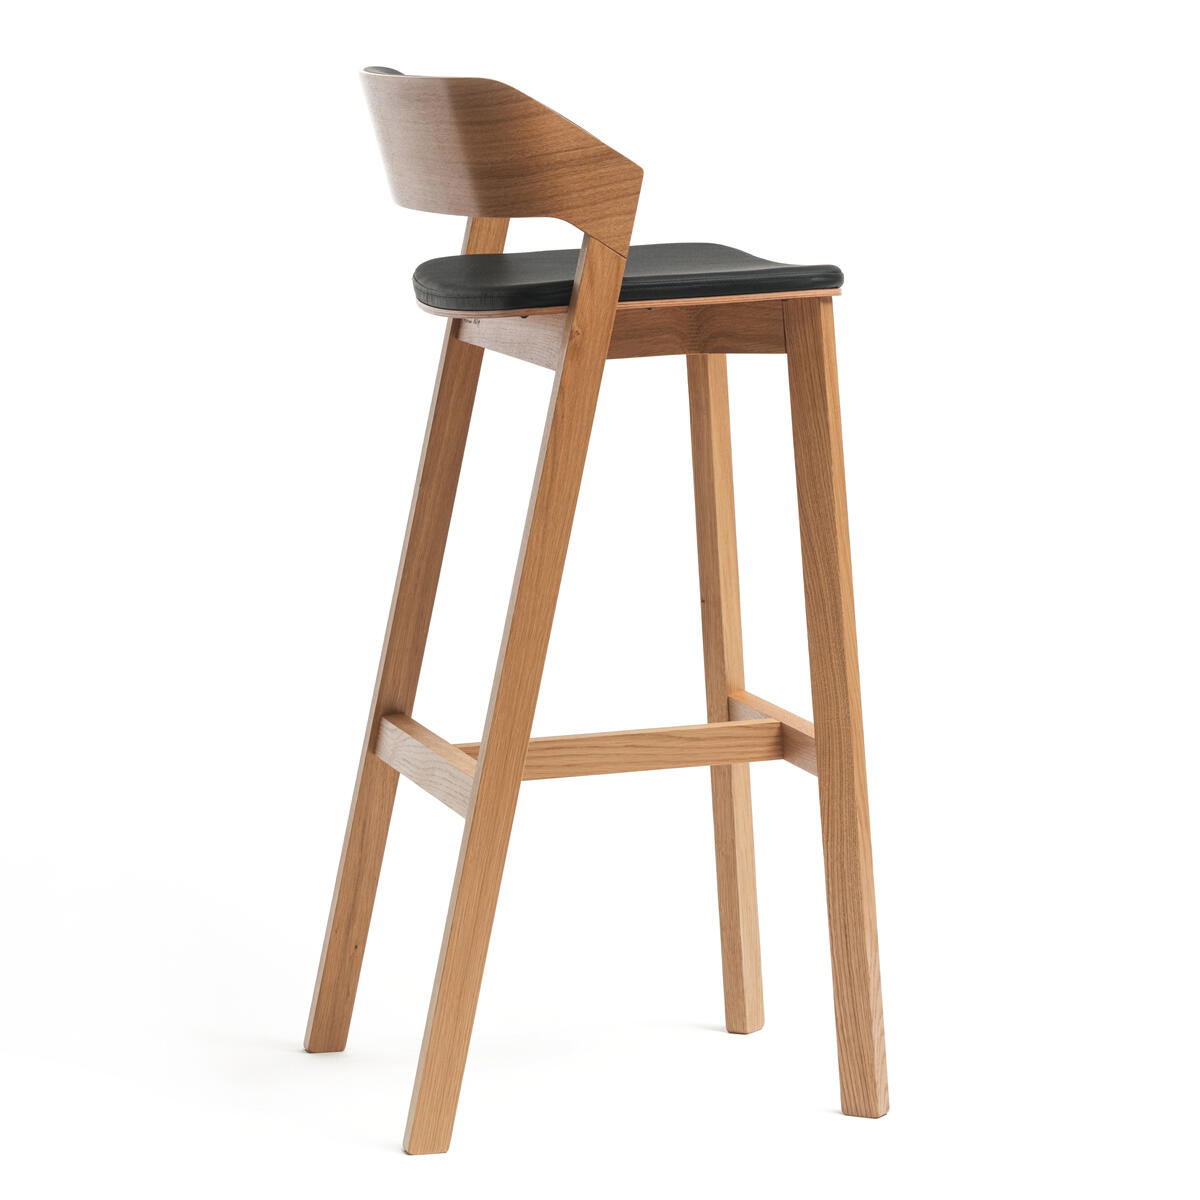 Pleasing Barstool Merano Ton A S Handcrafted For Generations Gmtry Best Dining Table And Chair Ideas Images Gmtryco